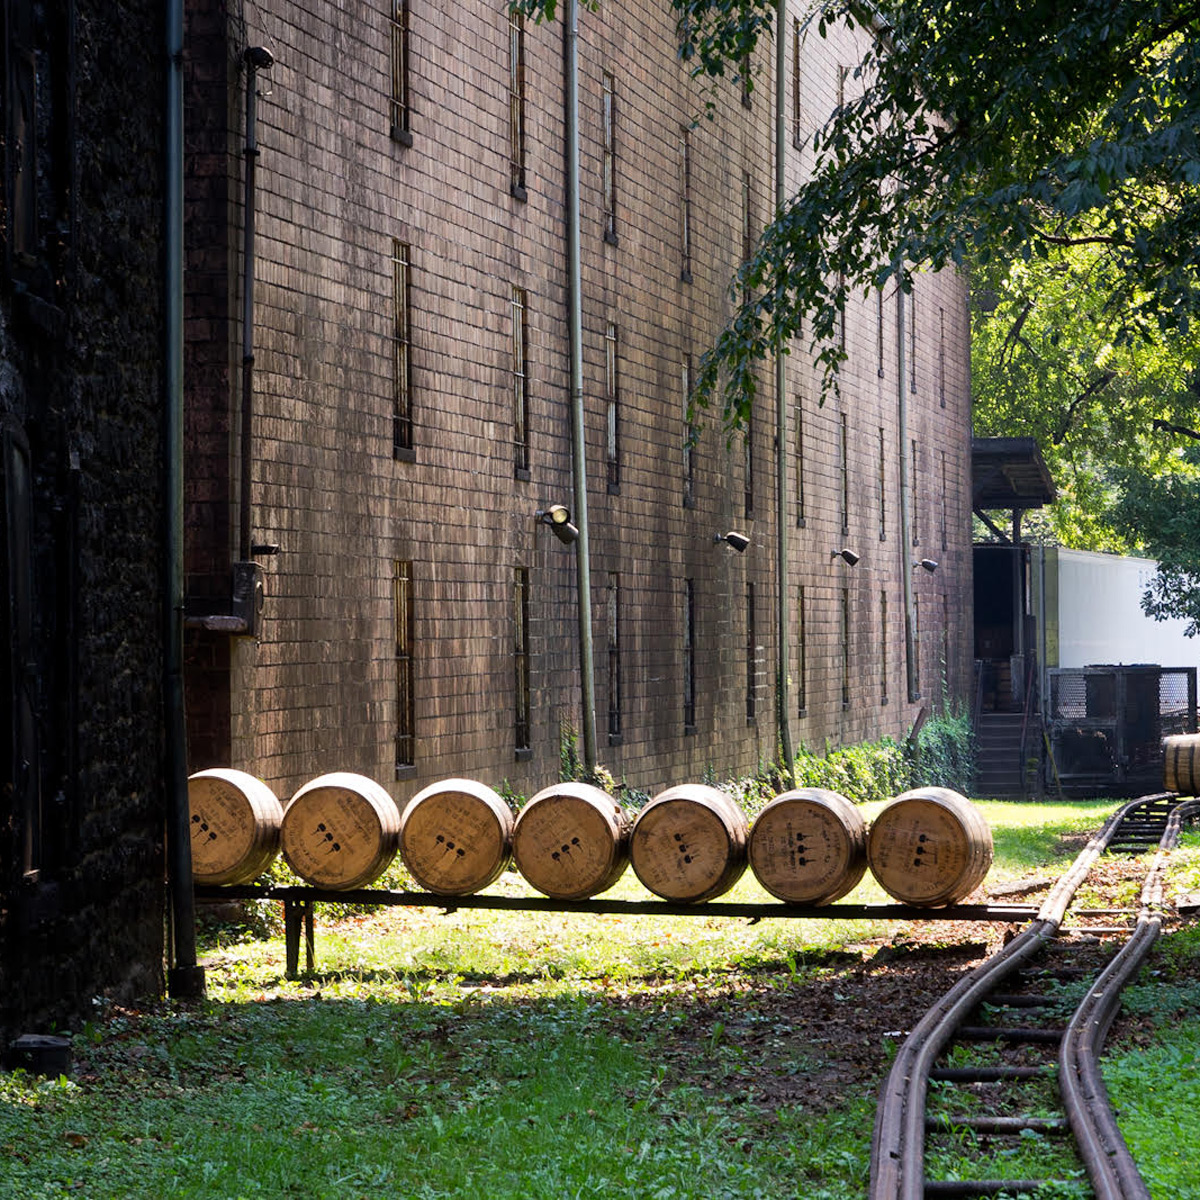 barrels in a line waiting by train tracks